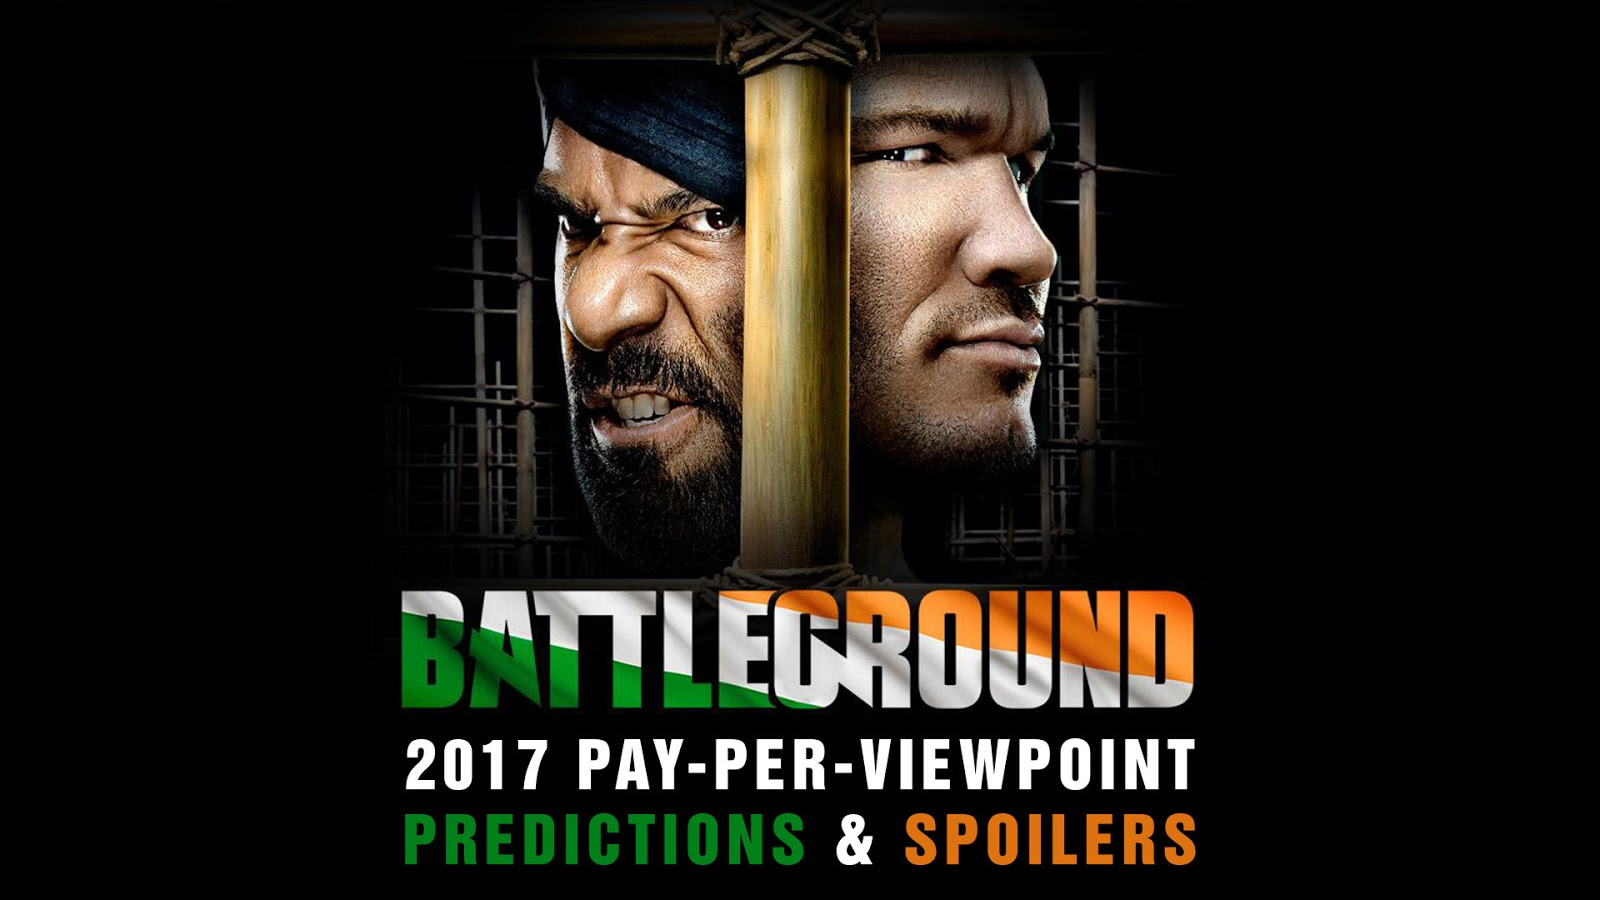 WWE BATTLEGROUND 2017 spoilers podcast